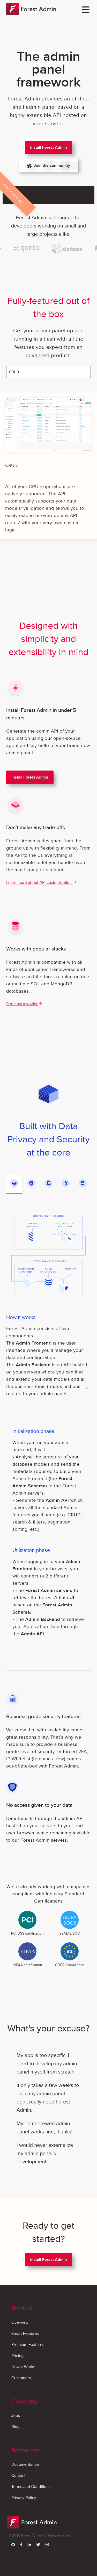 Example of Design for Computers & Electronics, Mobile Landing Page by forestadmin.com-V2 | Mobile Landing Page Design